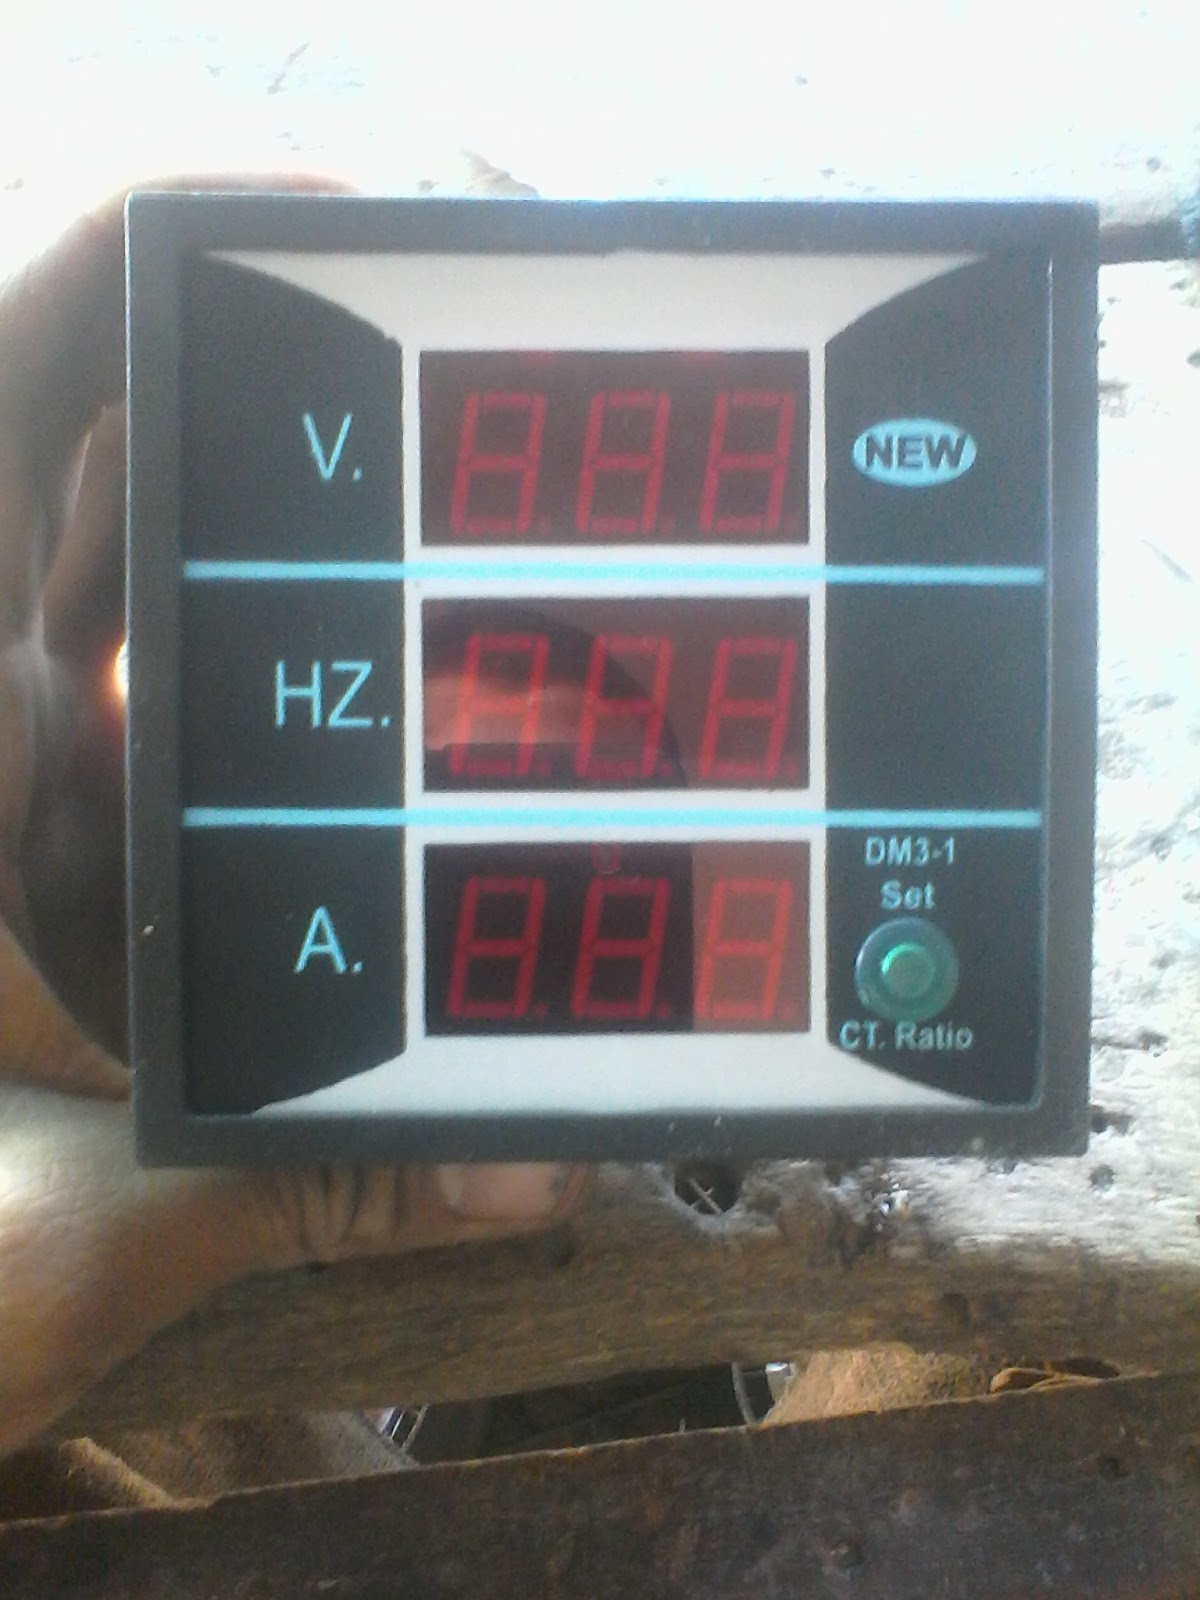 Digital Multi Voltmeter Ammeter Hz Wiring With Diagram | Electrical on meter form diagrams, house electrical meter diagrams, meter service diagrams, home water meter installation diagrams, meter socket diagram, acme transformers electrical connection diagrams, 12s meter diagrams, meter socket wiring,